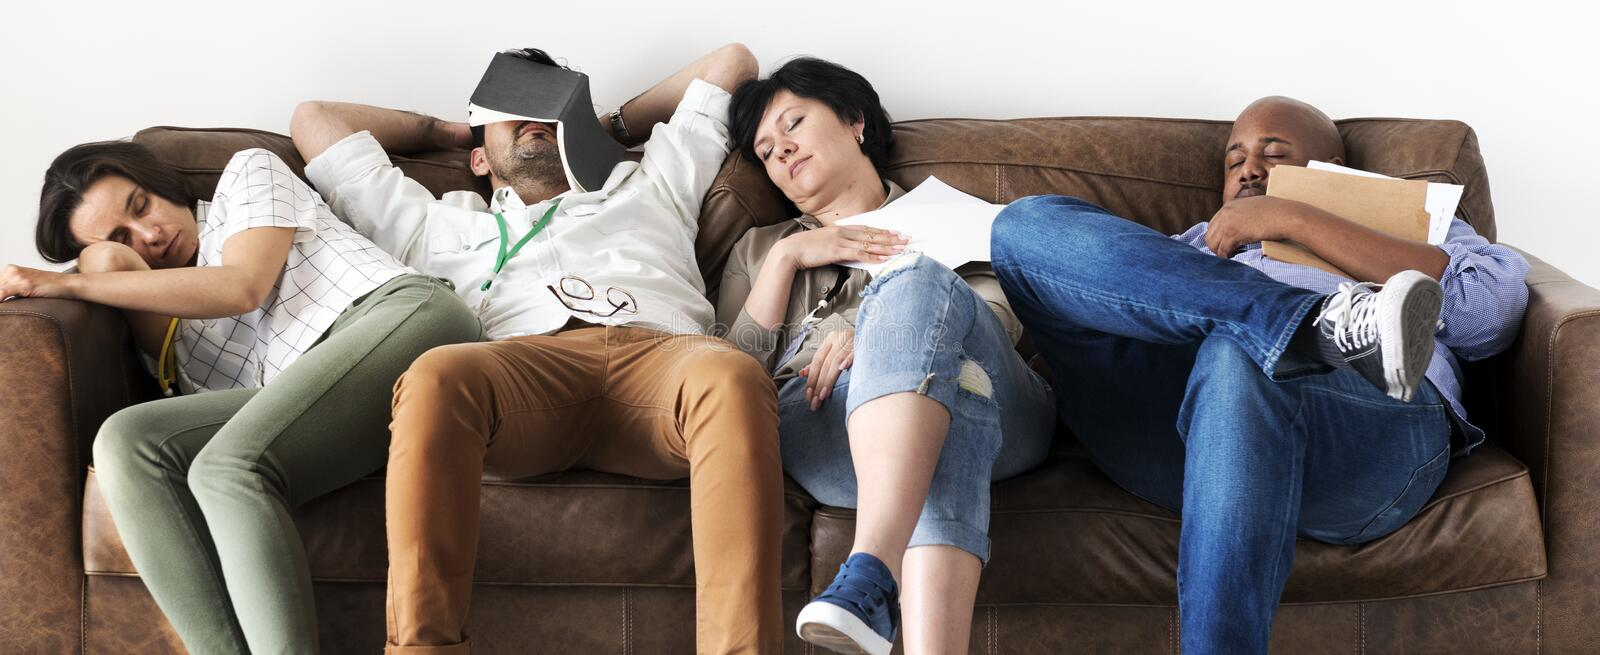 Diverse workers taking rest on couch stock photo